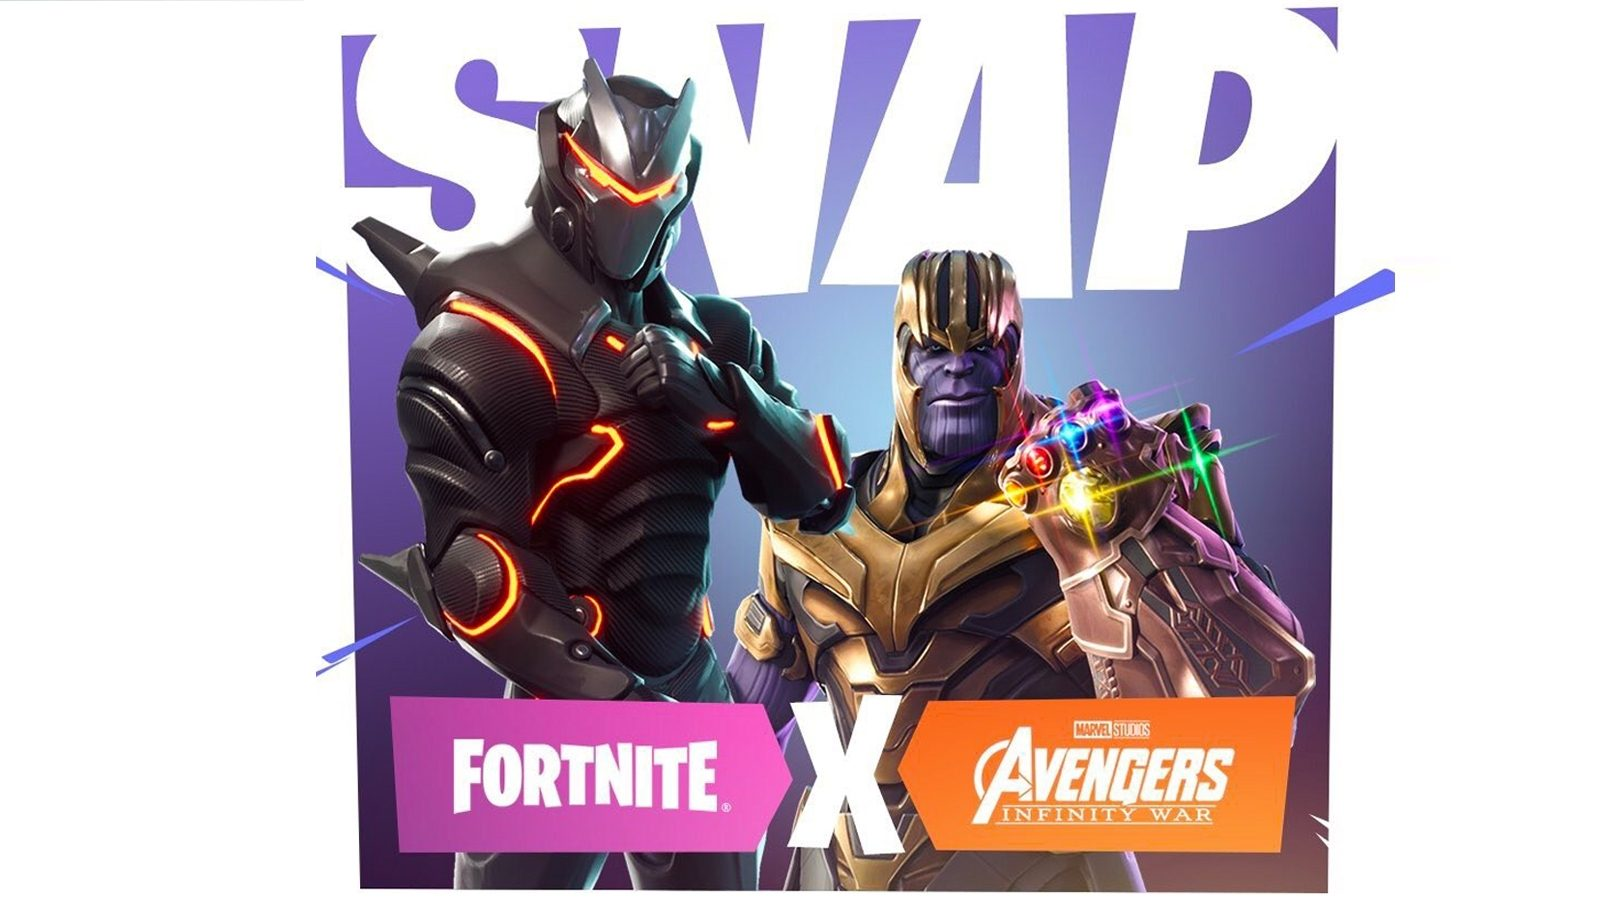 Fortnite Avengers Infinity War Crossover Event Finished - Is